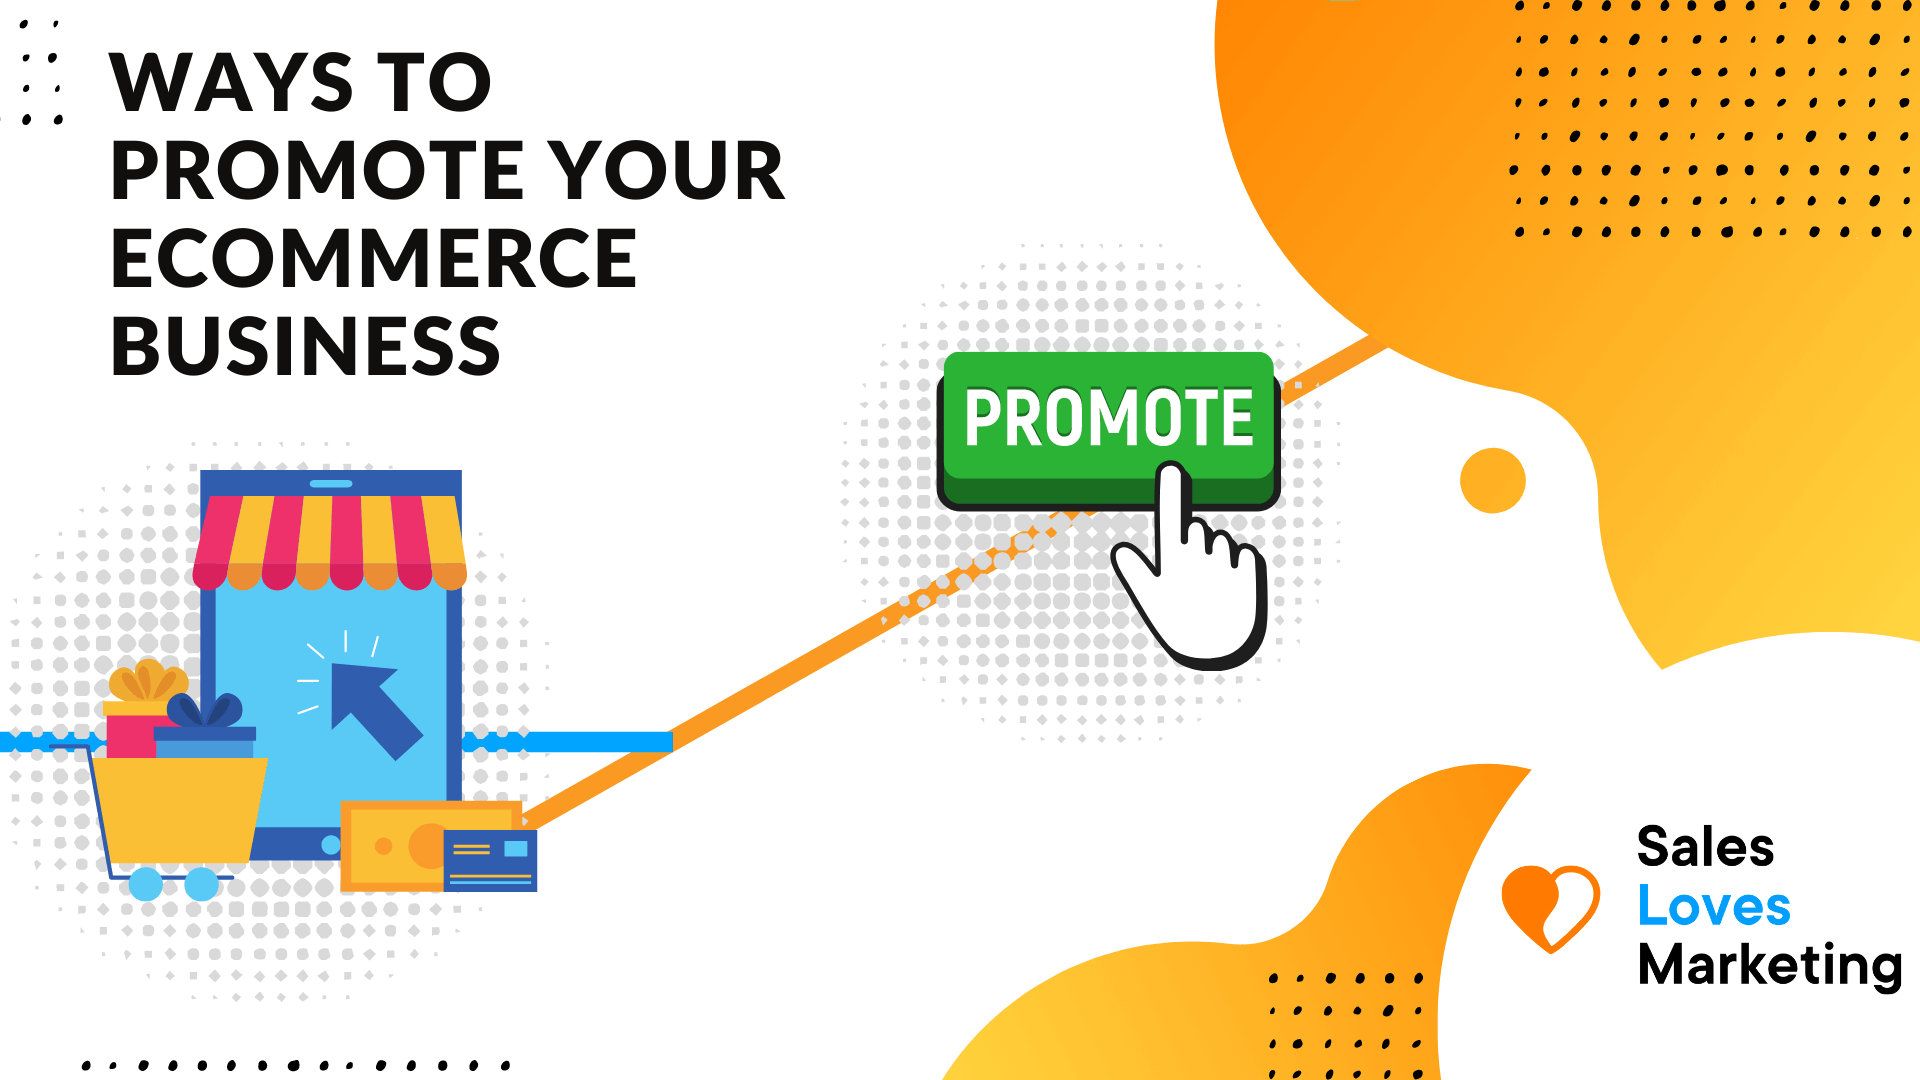 Less know ways to promote your ecommerce business